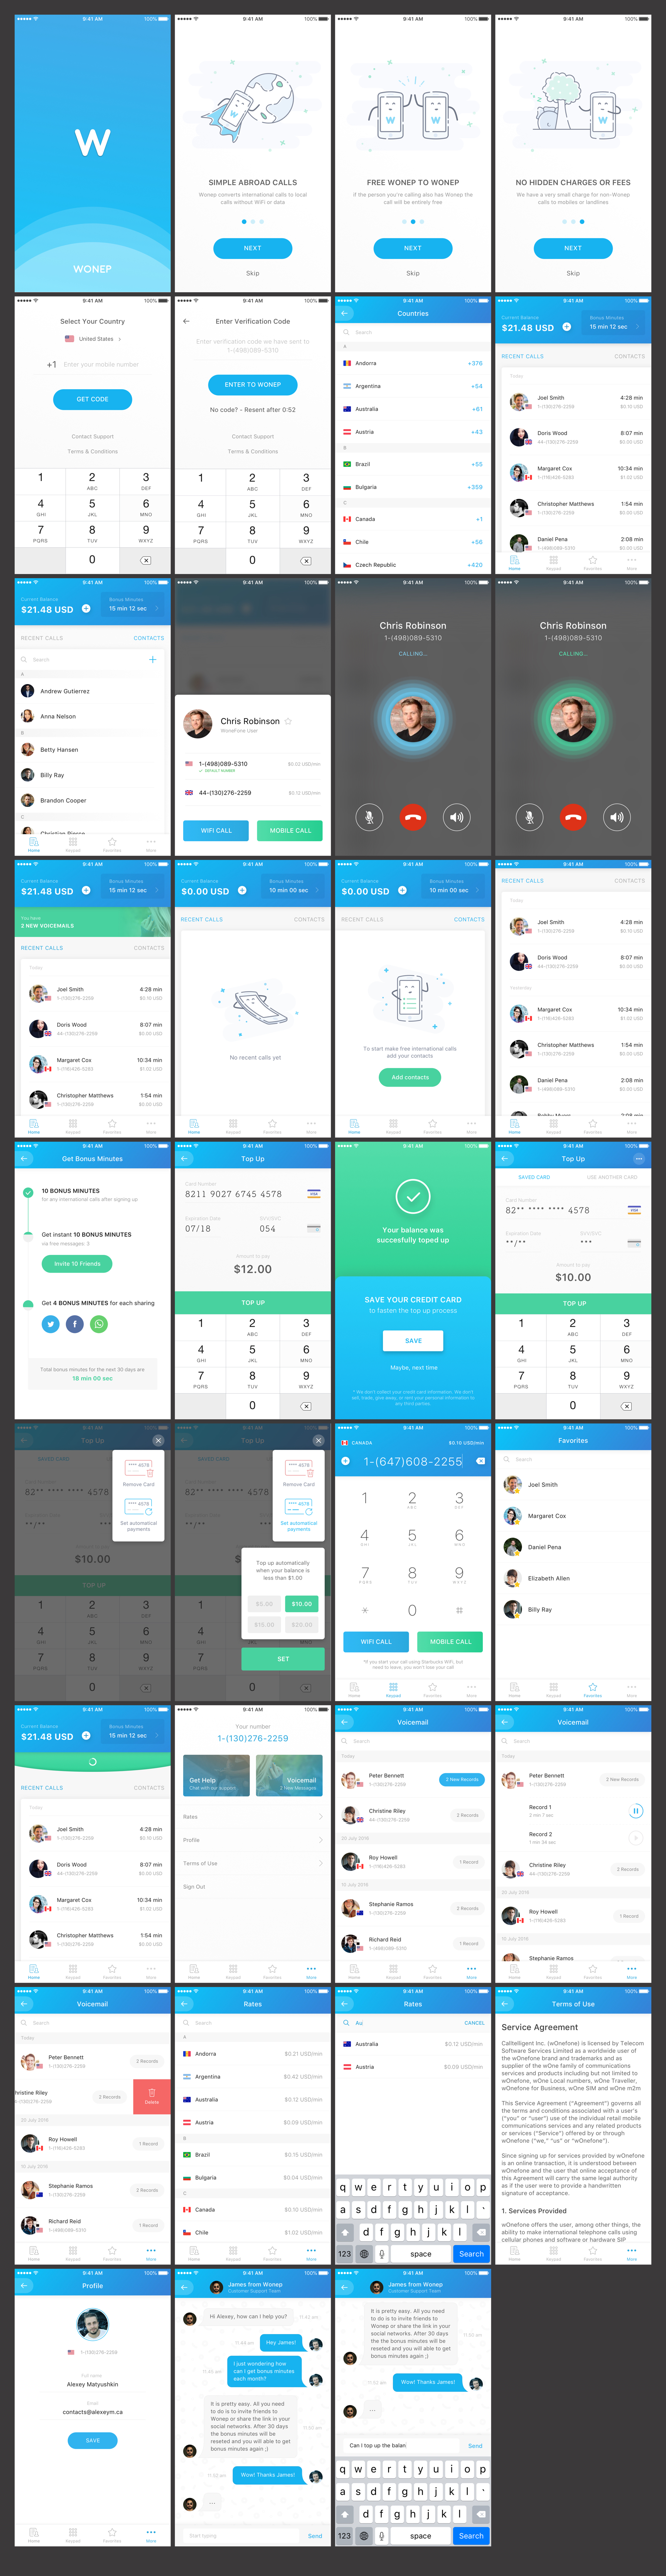 Wonep - Internationl Calling App UI Kit - UI kit represents a complete iOS app for making affordable international calls.